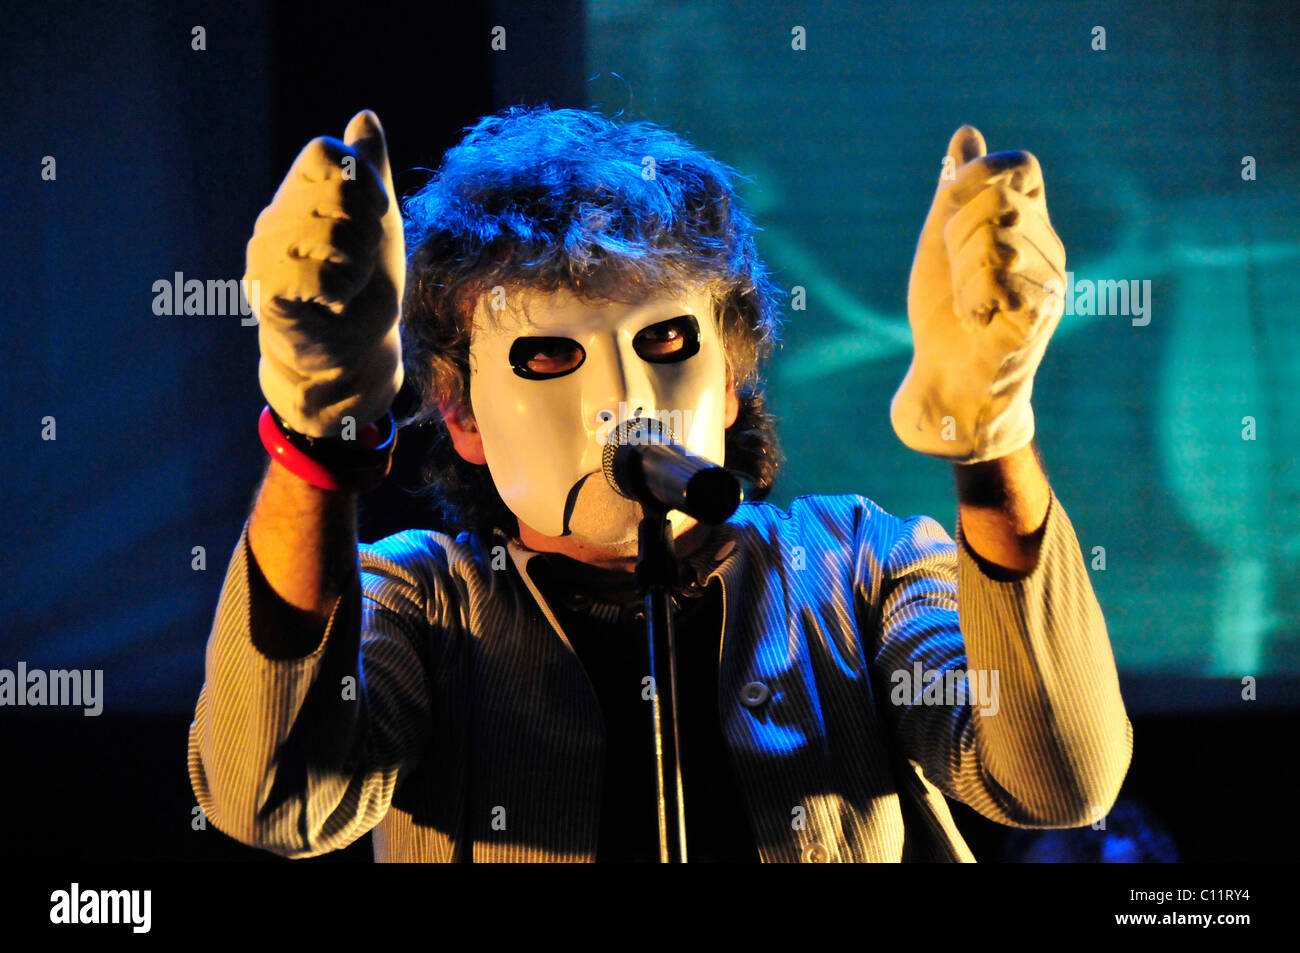 Peter Nicholls, frontman of the British rock band IQ, performing one of his theatrical performances in December - Stock Image